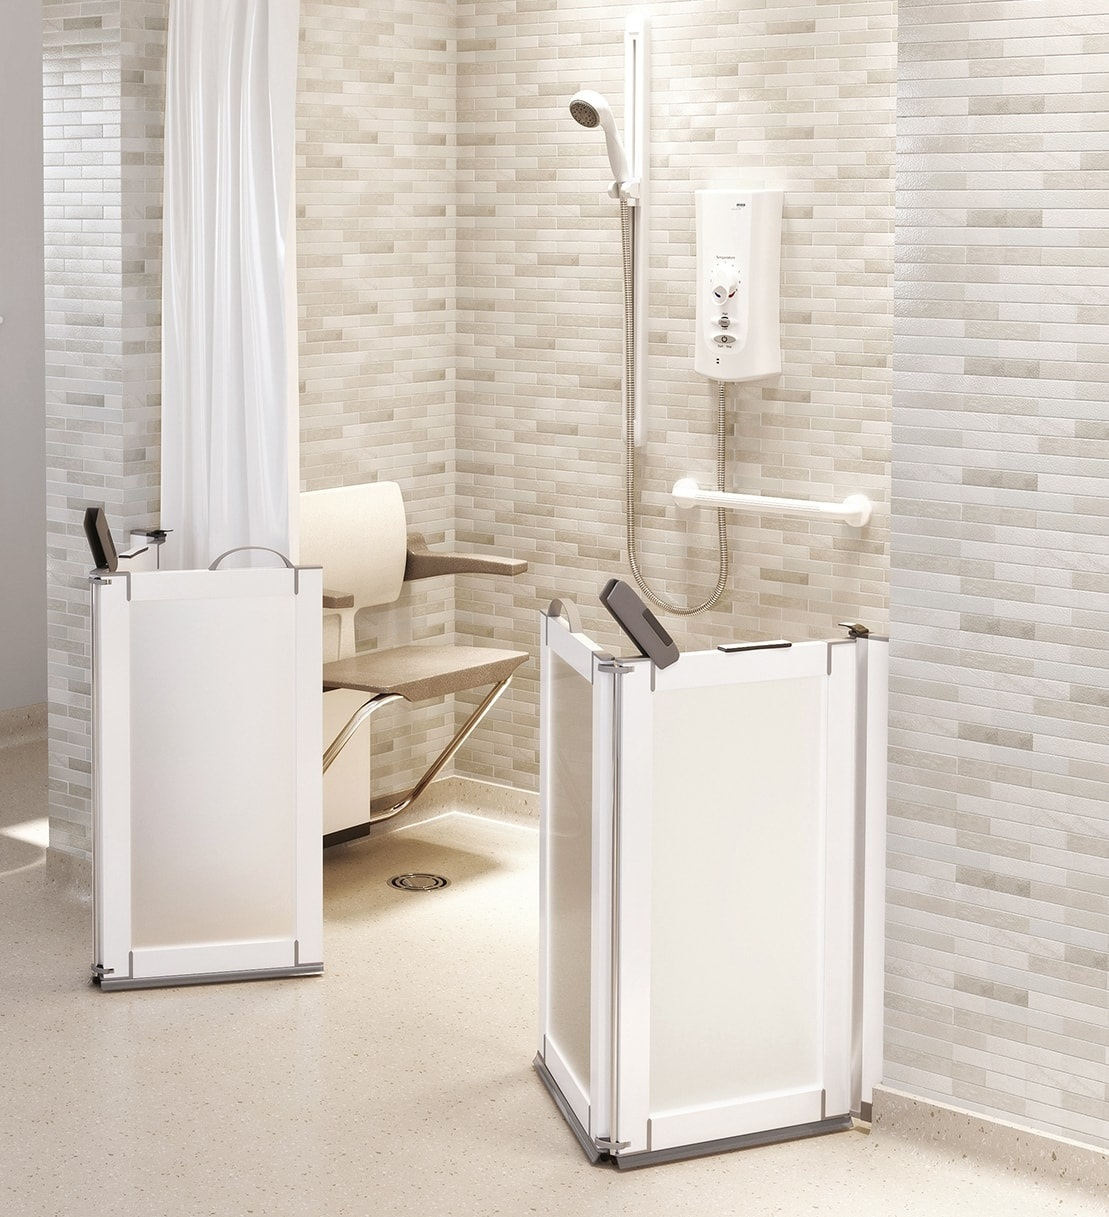 Impey Elevate Half Height Shower Doors Living Made Easy